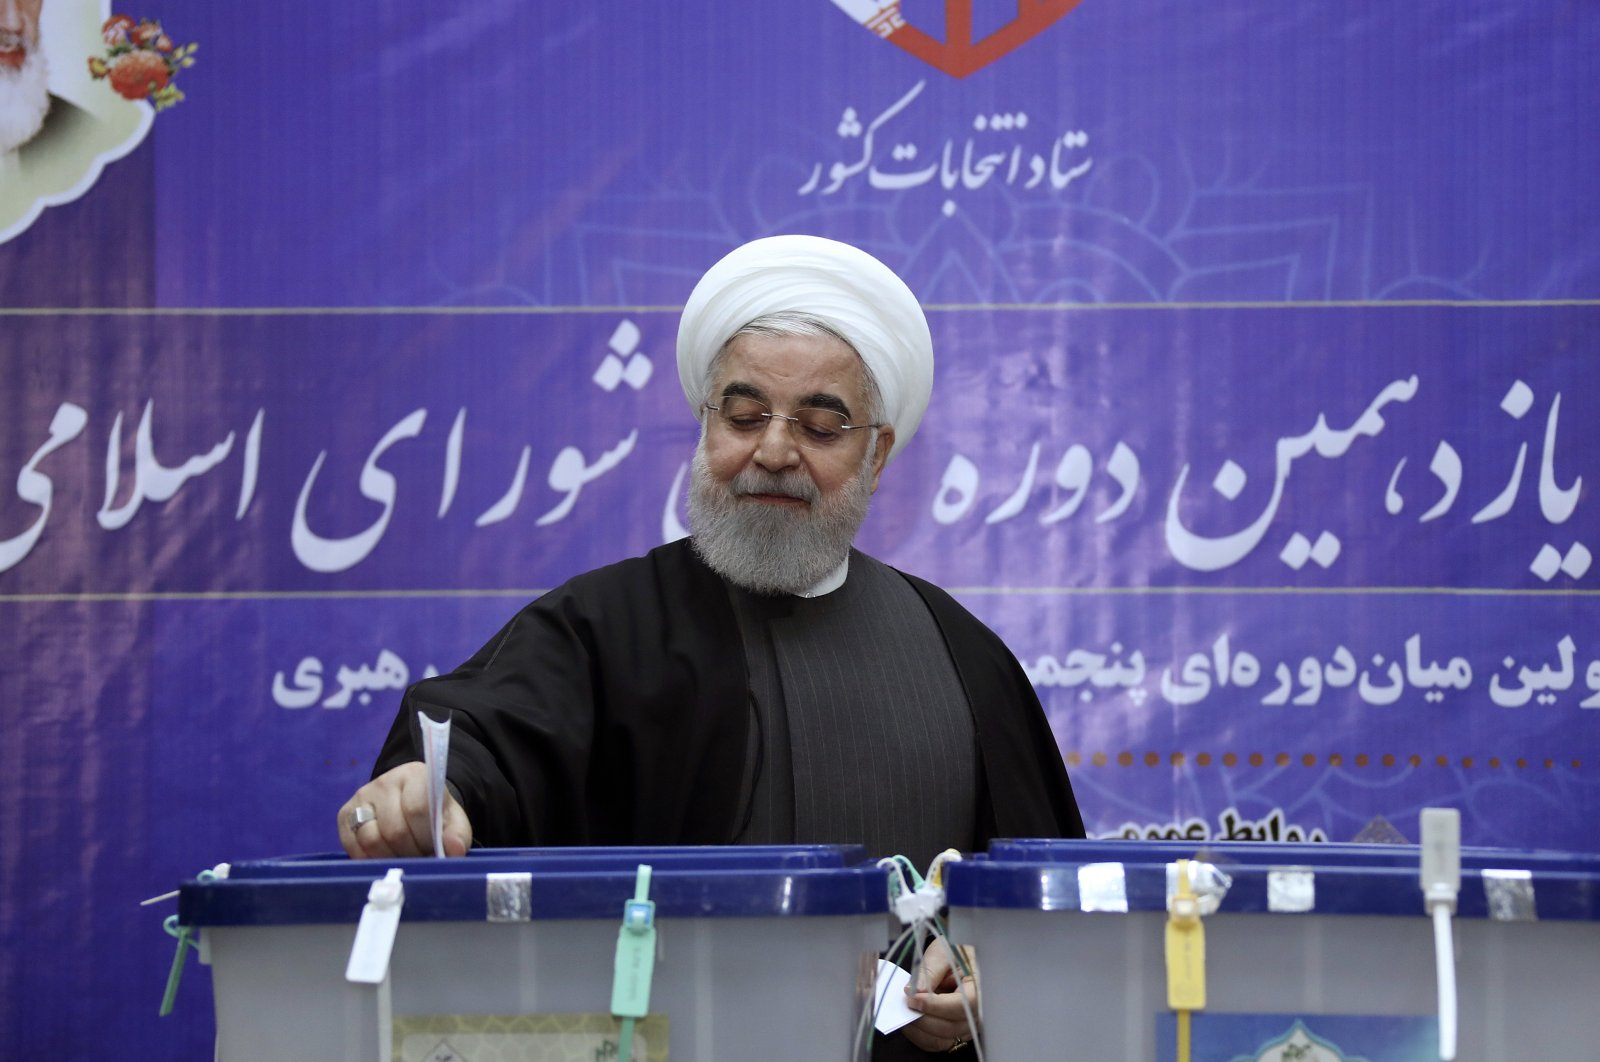 In this photo released by the official website of the office of the Iranian presidency, President Hassan Rouhani casts his ballot in the parliamentary elections at the interior ministry in Tehran, Iran, Feb. 21, 2020. (Iranian Presidency Office Photo via AP)